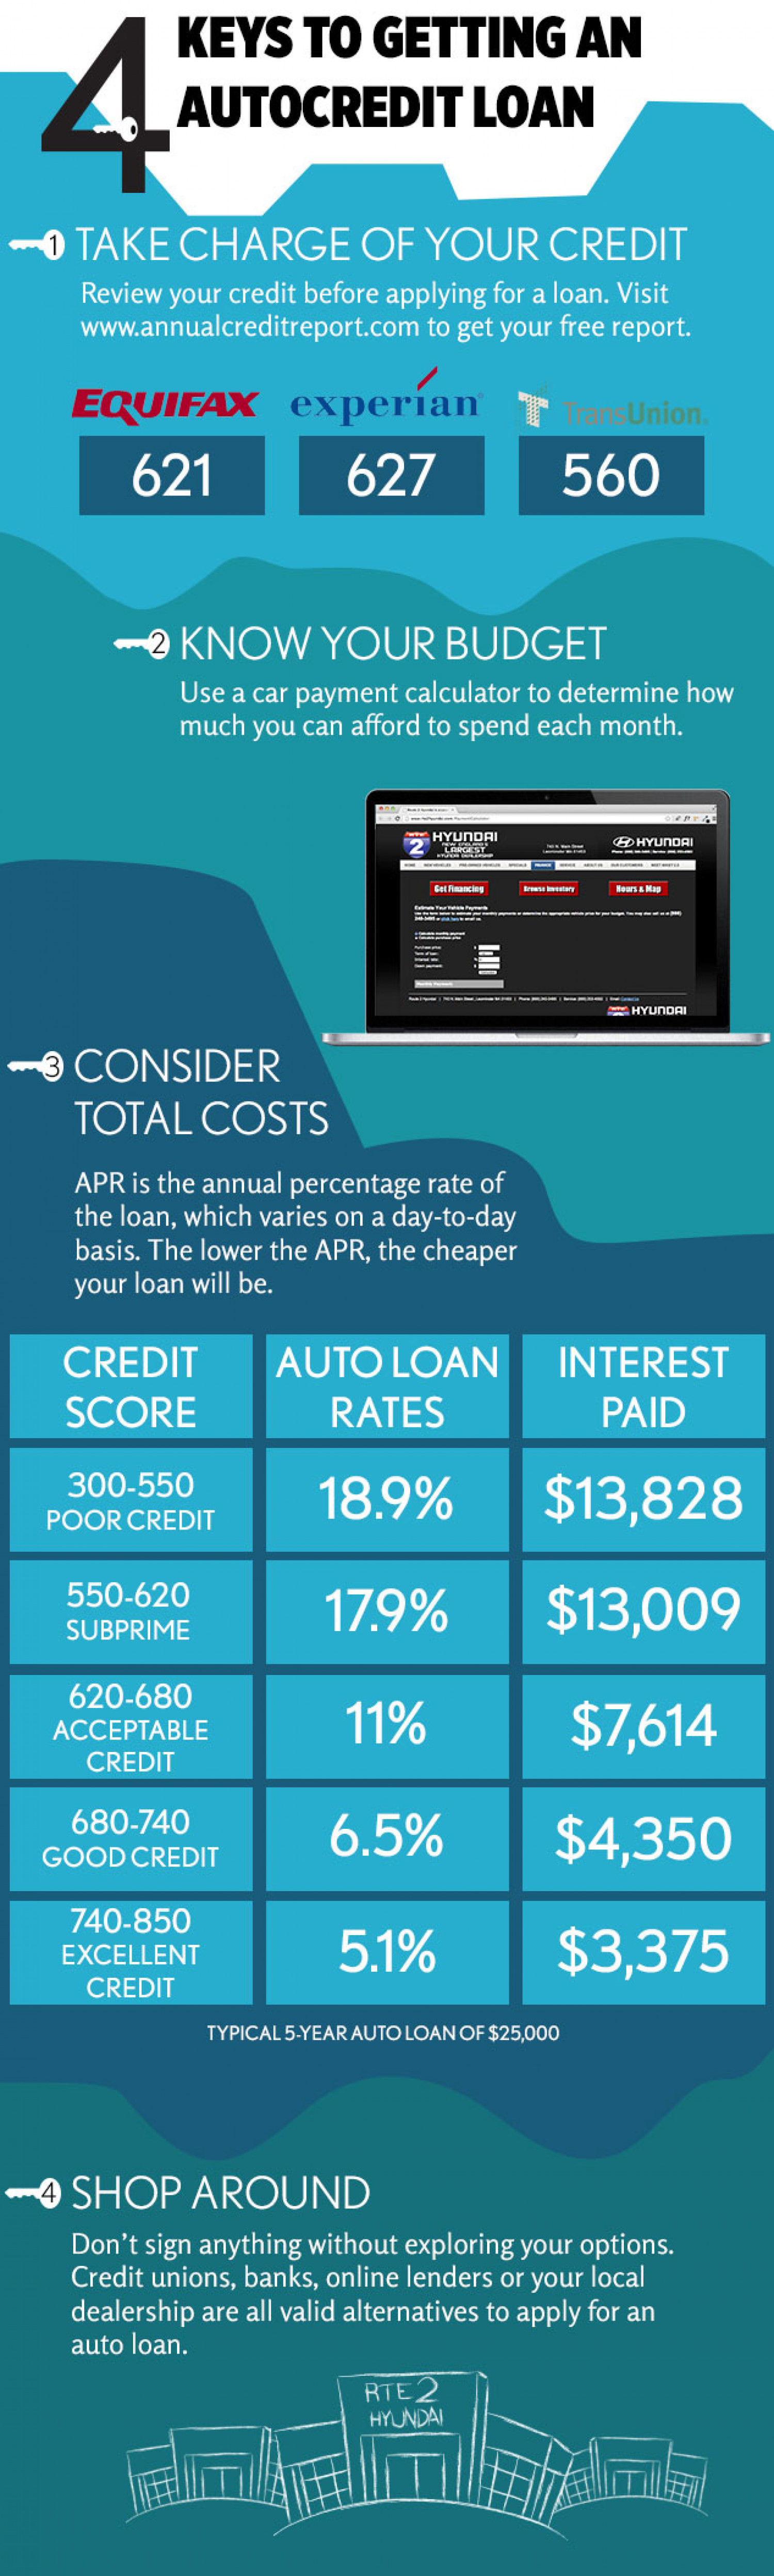 How To Get an Auto Loan Infographic